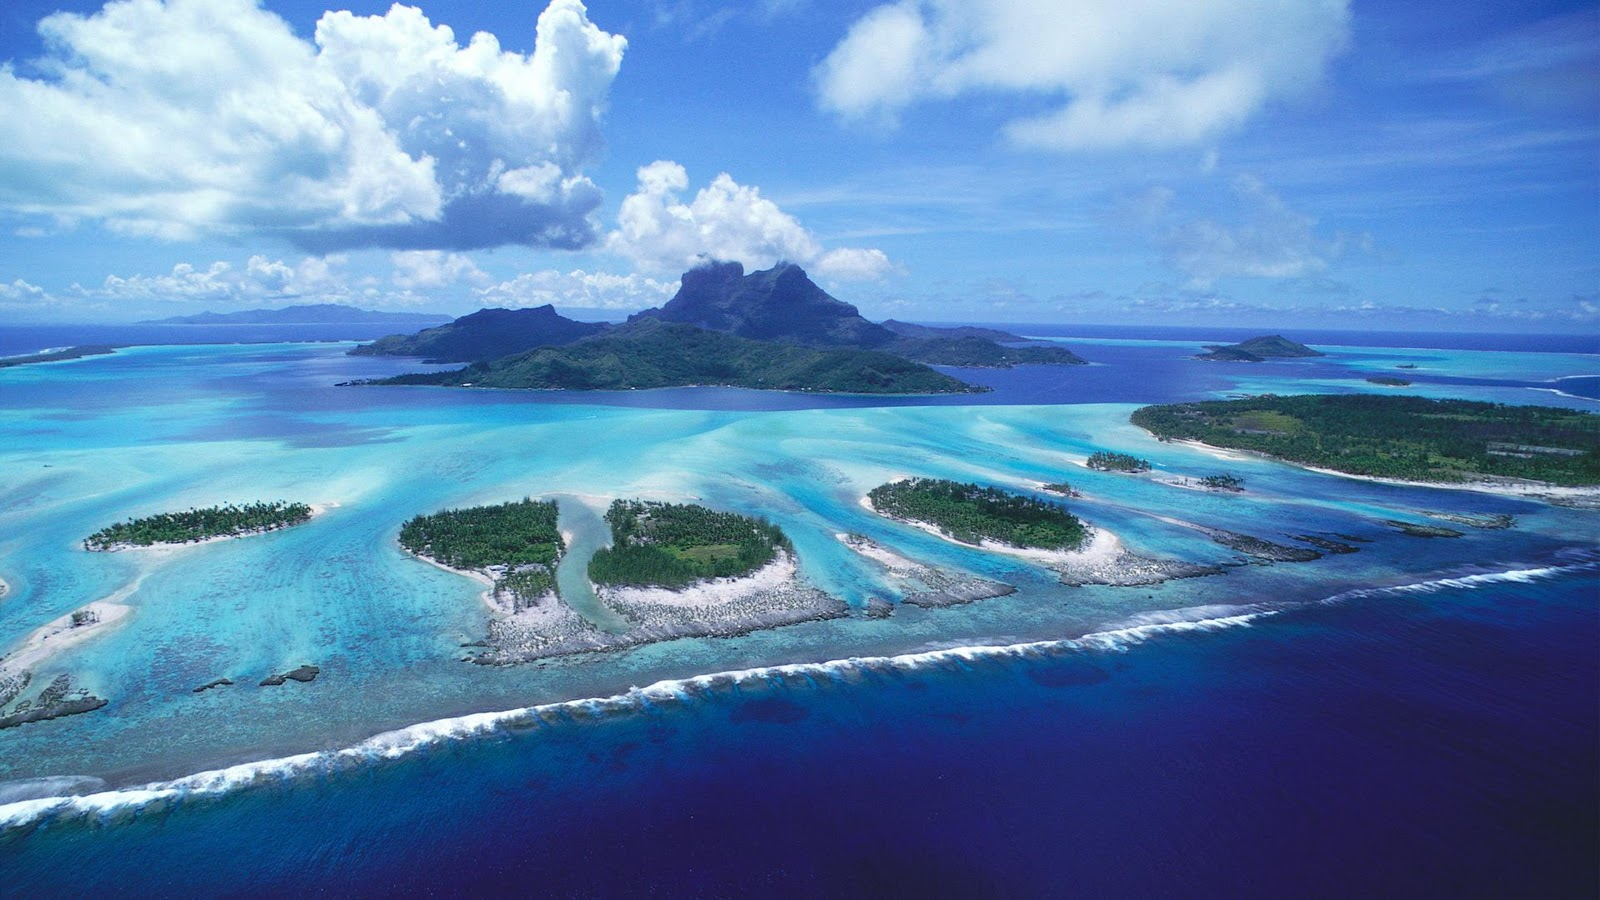 hawaii helicopter ride with Tahiti Bora Bora Island Pearl Of on Target29 together with Tahiti Bora Bora Island Pearl Of also Watch also Target30 in addition Rapper Ludacris Gives Curvaceous Girlfriend Eudoxie Ride Hawaii.